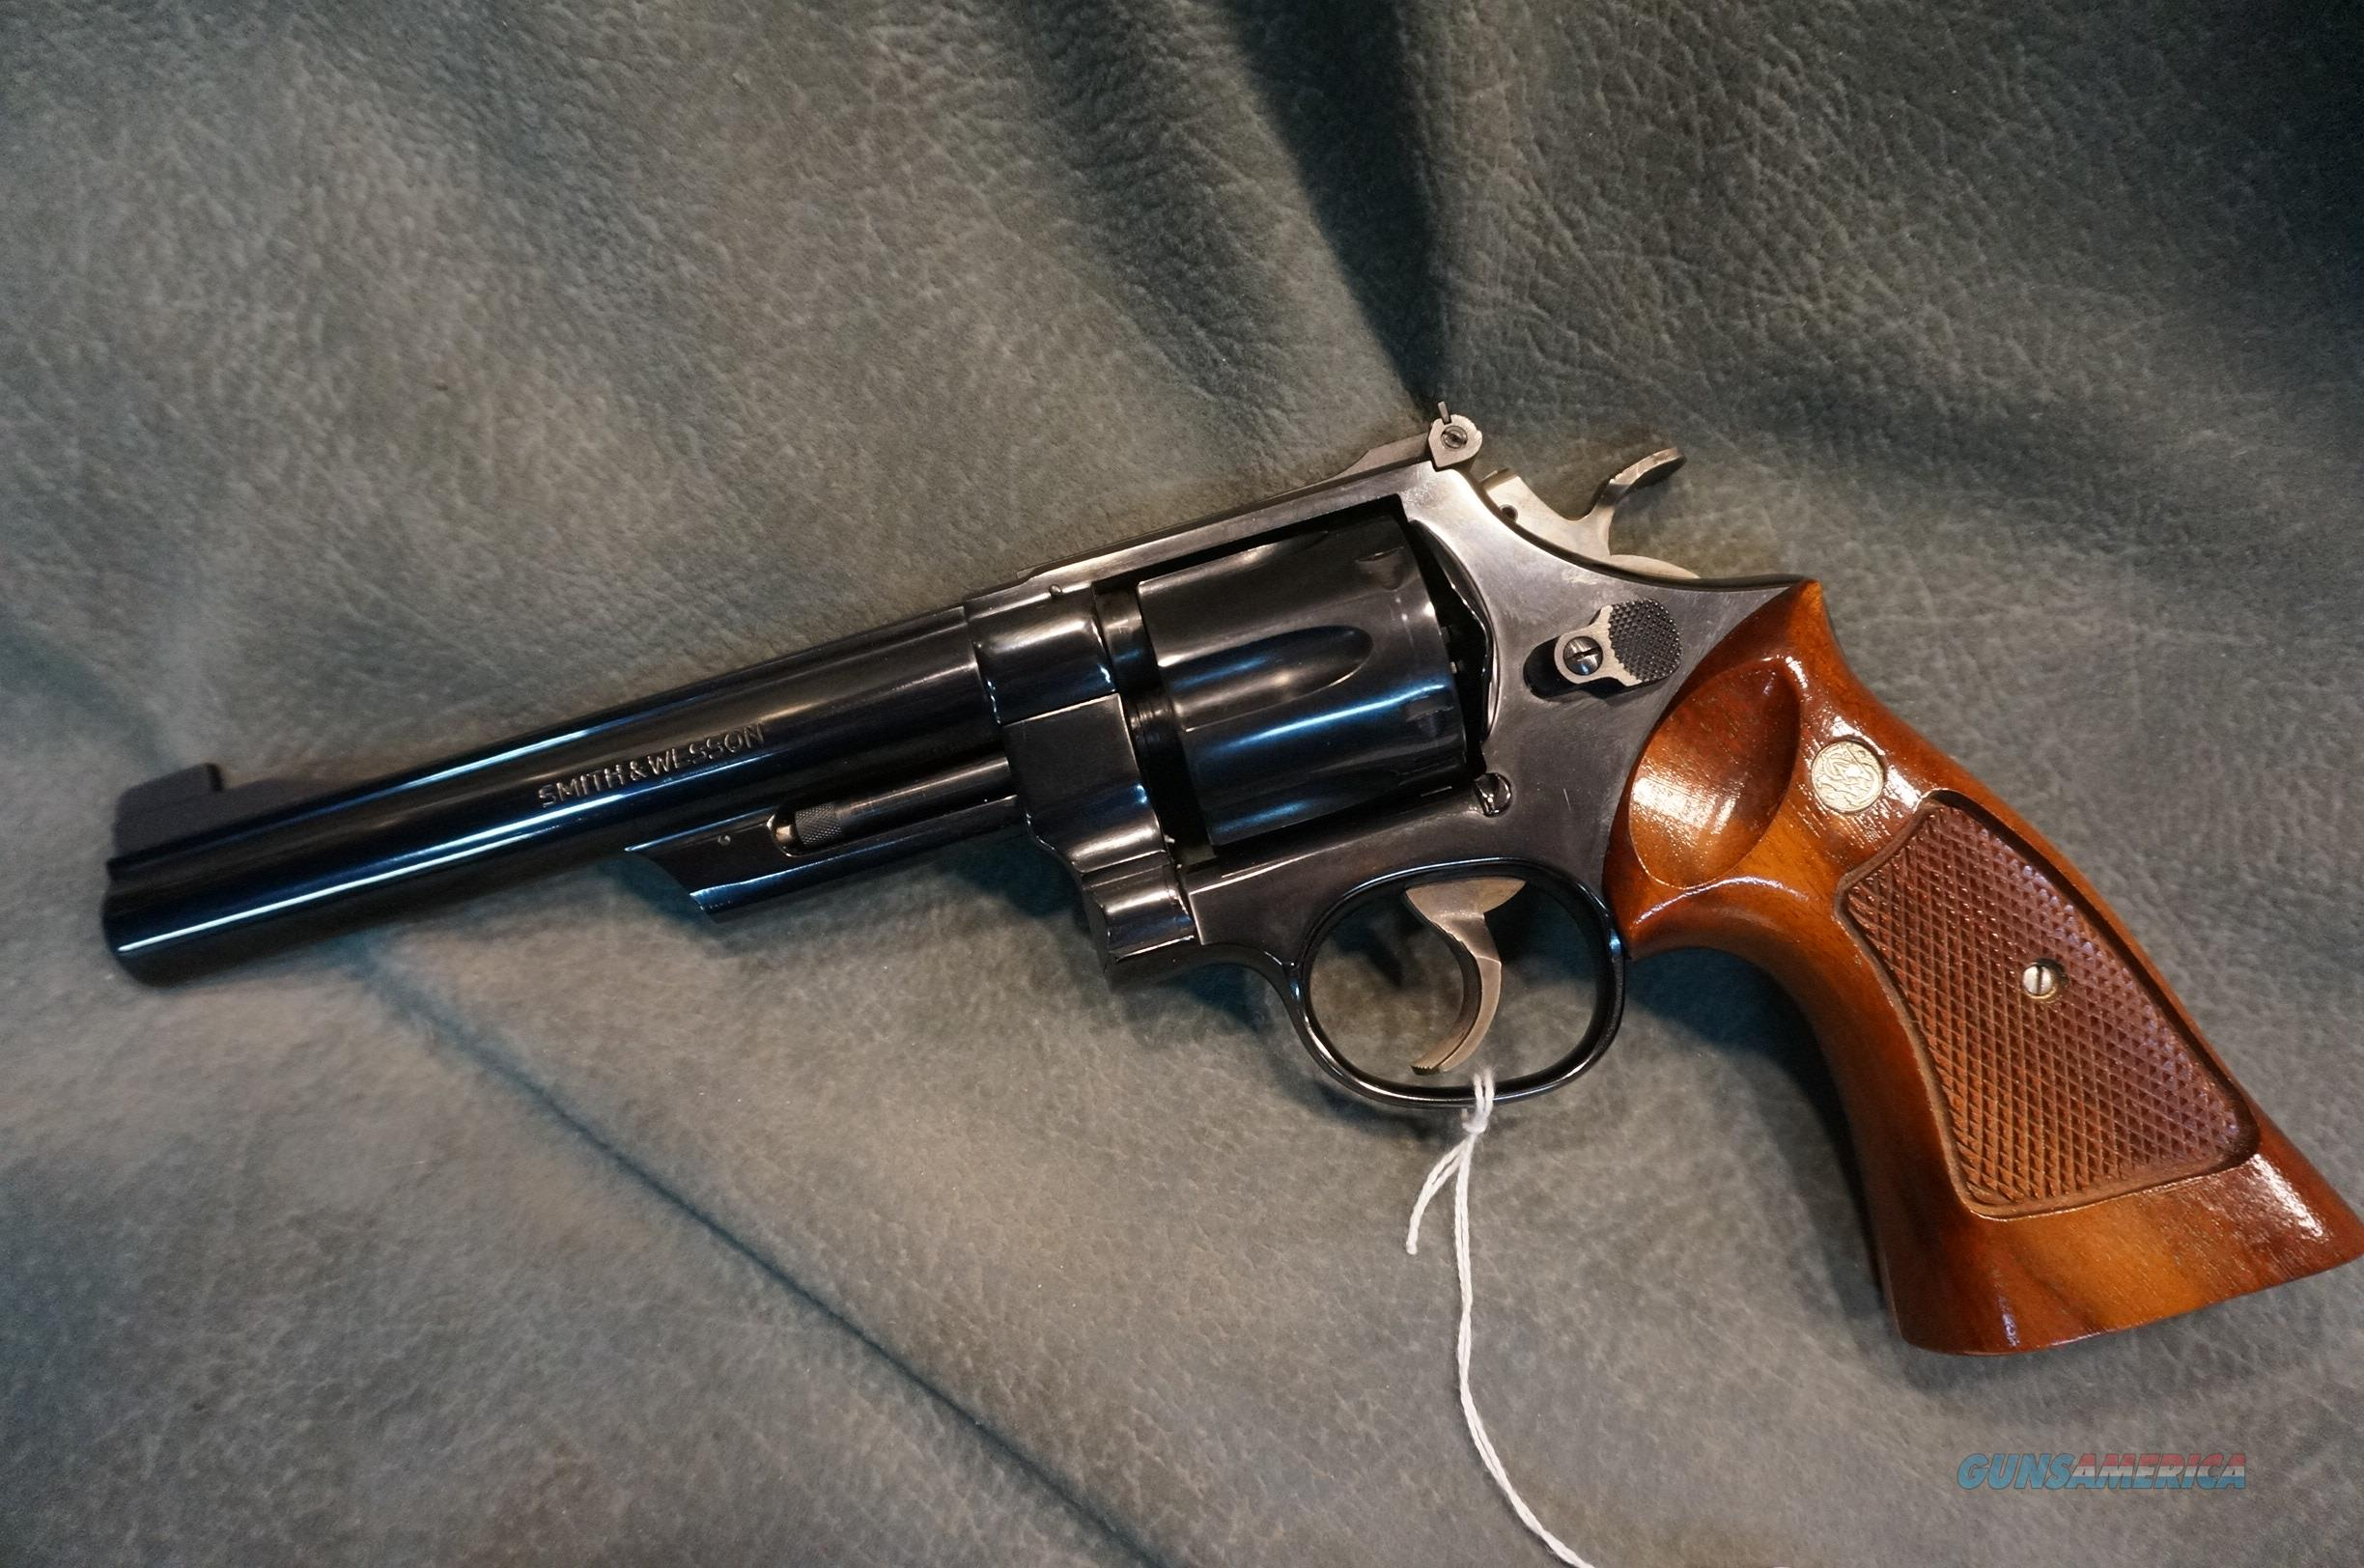 "S+W Model 25-2 45ACP 6 1/2""  Guns > Pistols > Smith & Wesson Revolvers > Full Frame Revolver"